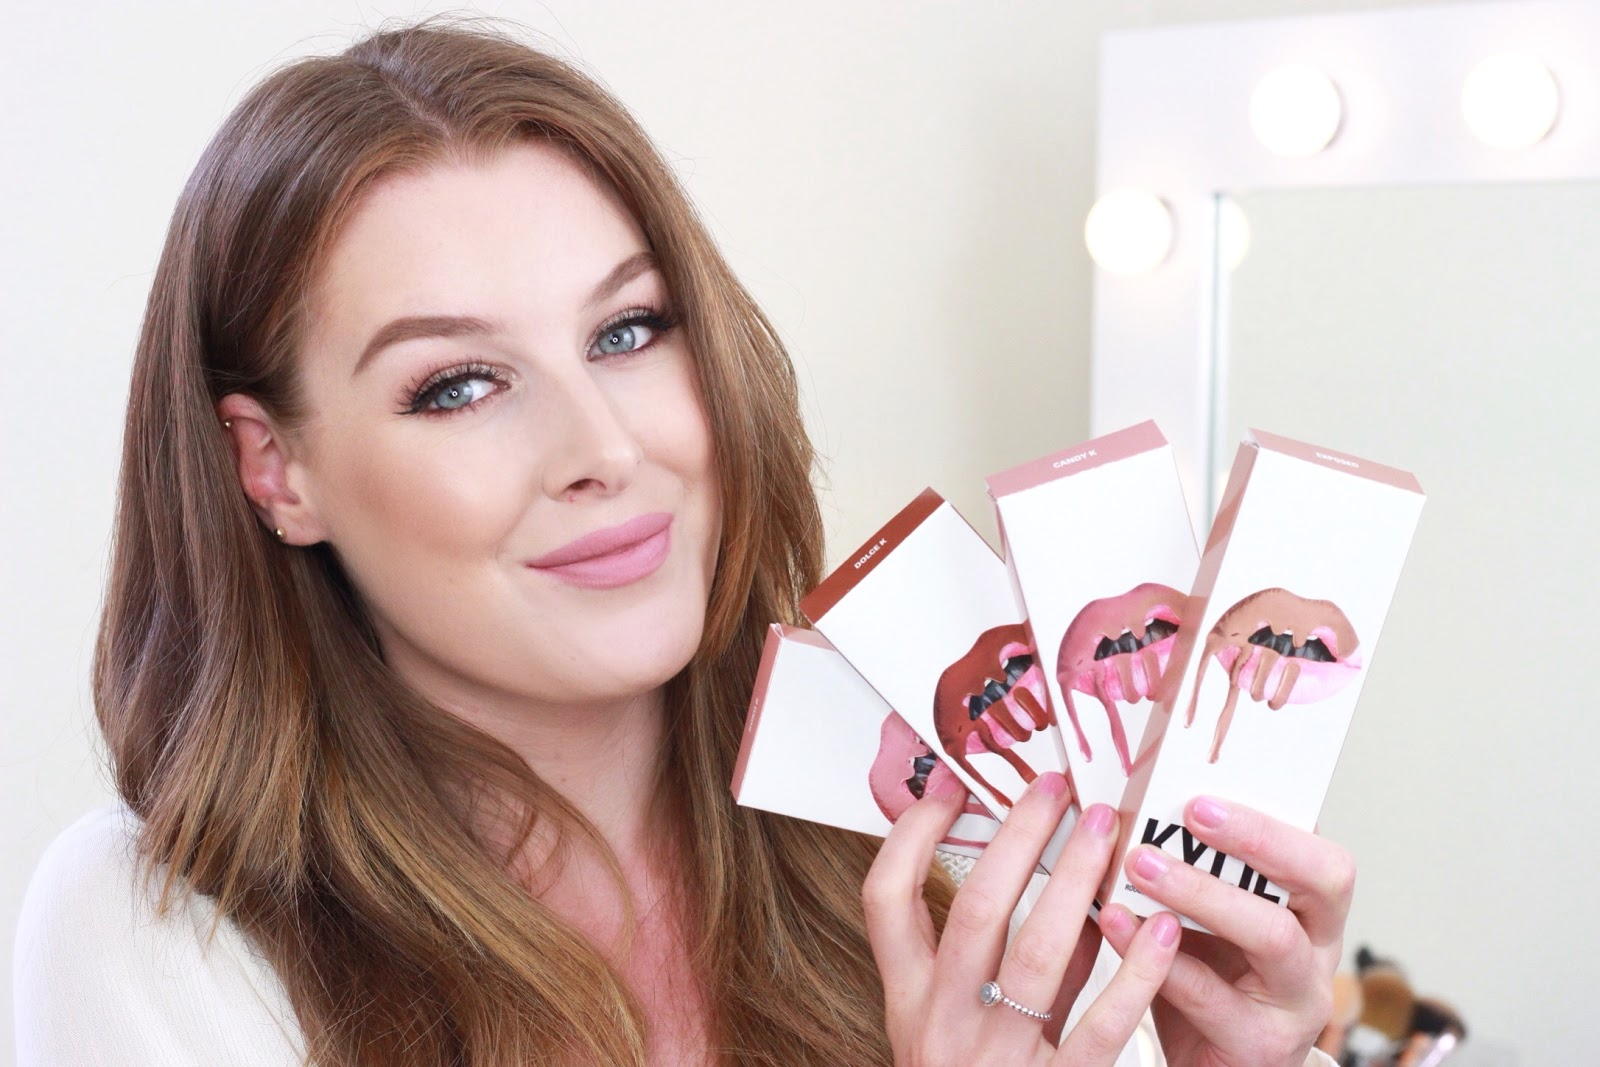 Kylie Jenner Lip Kit Swatches